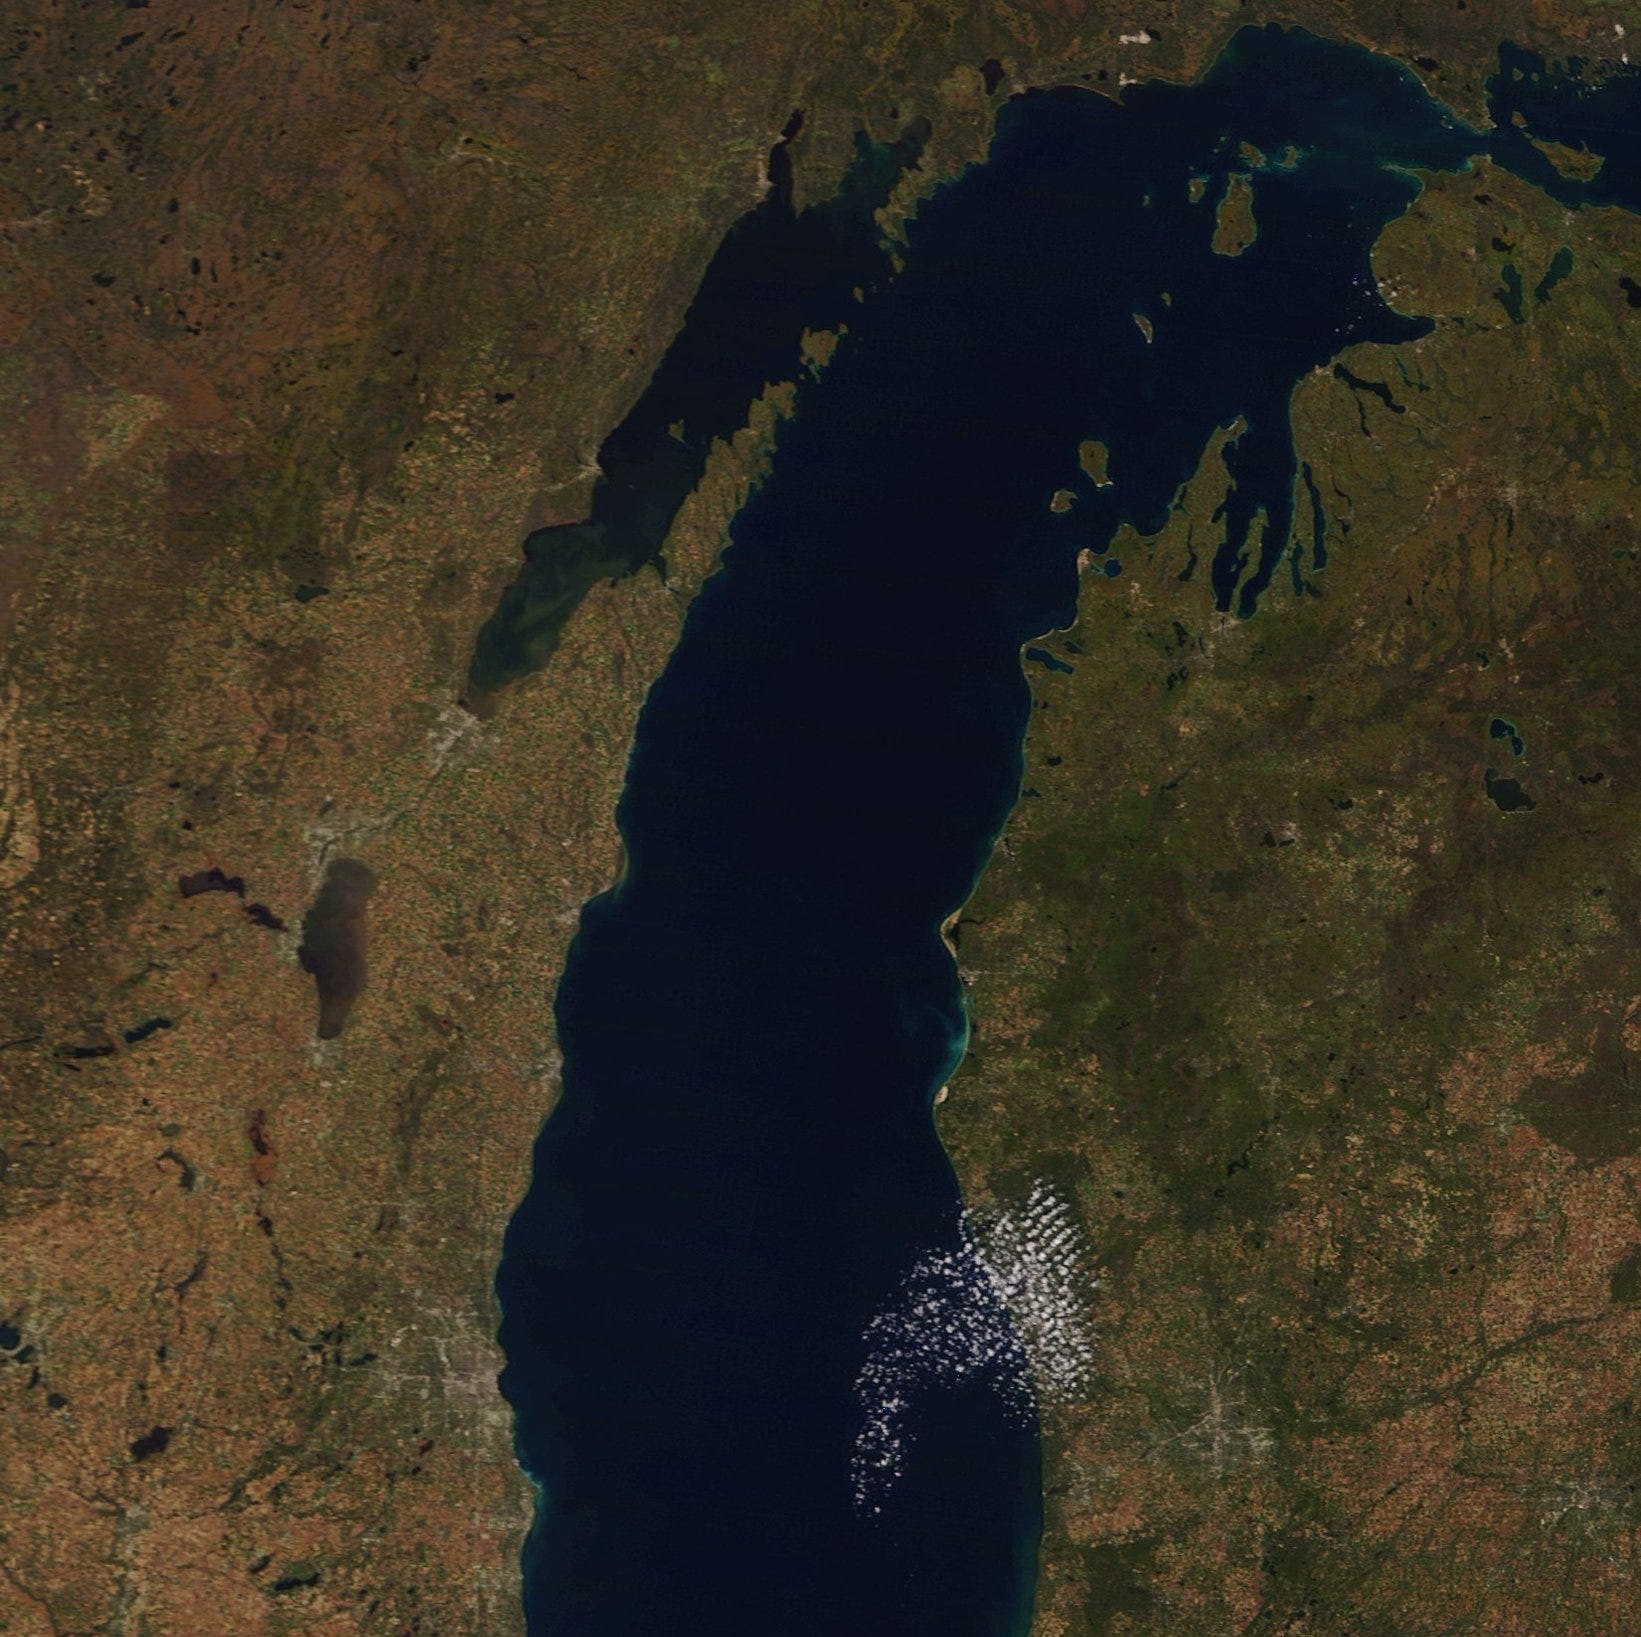 You can see Michigan's gorgeous fall colors from space